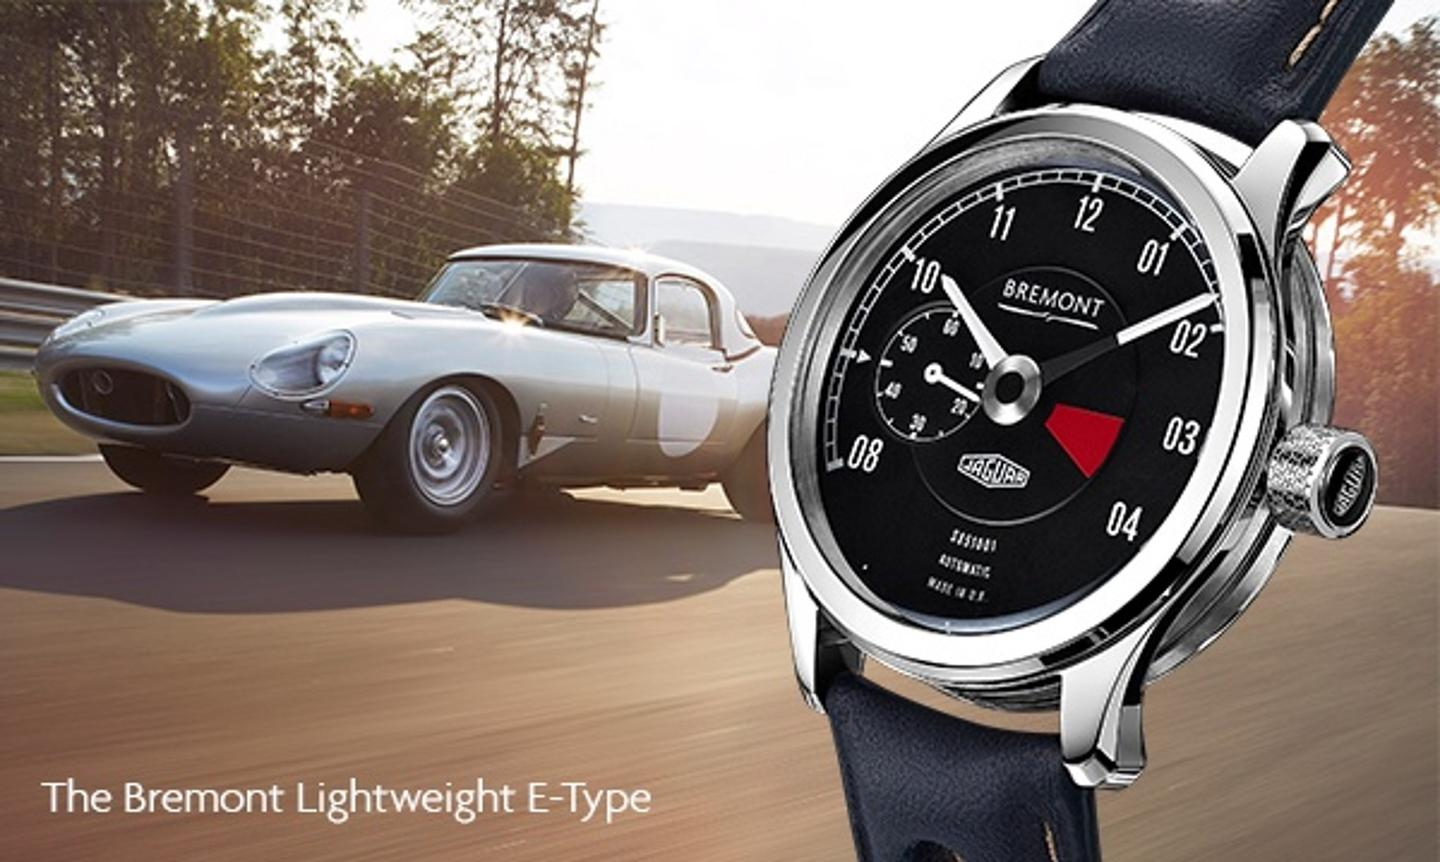 Only six of the Lightweight E-Type watches will be built – one for each car